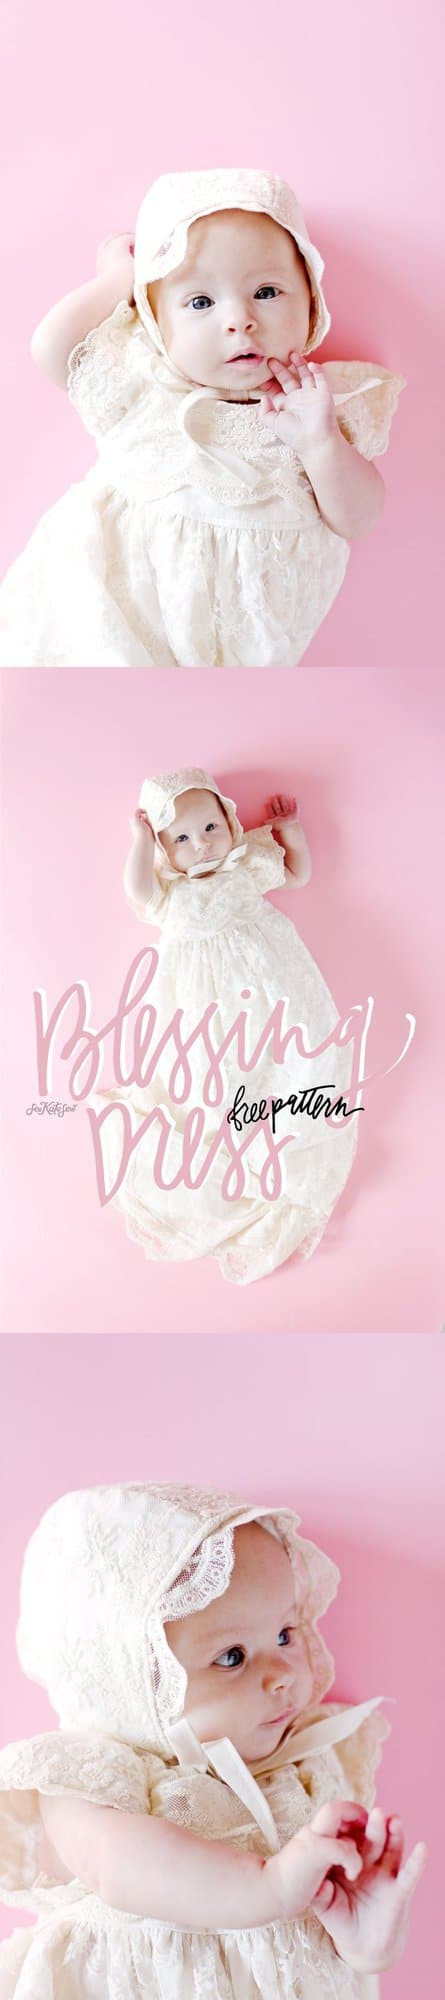 Free blessing dress pattern tutorial see kate sew free blessing gown tutorial pattern see kate sew jeuxipadfo Gallery